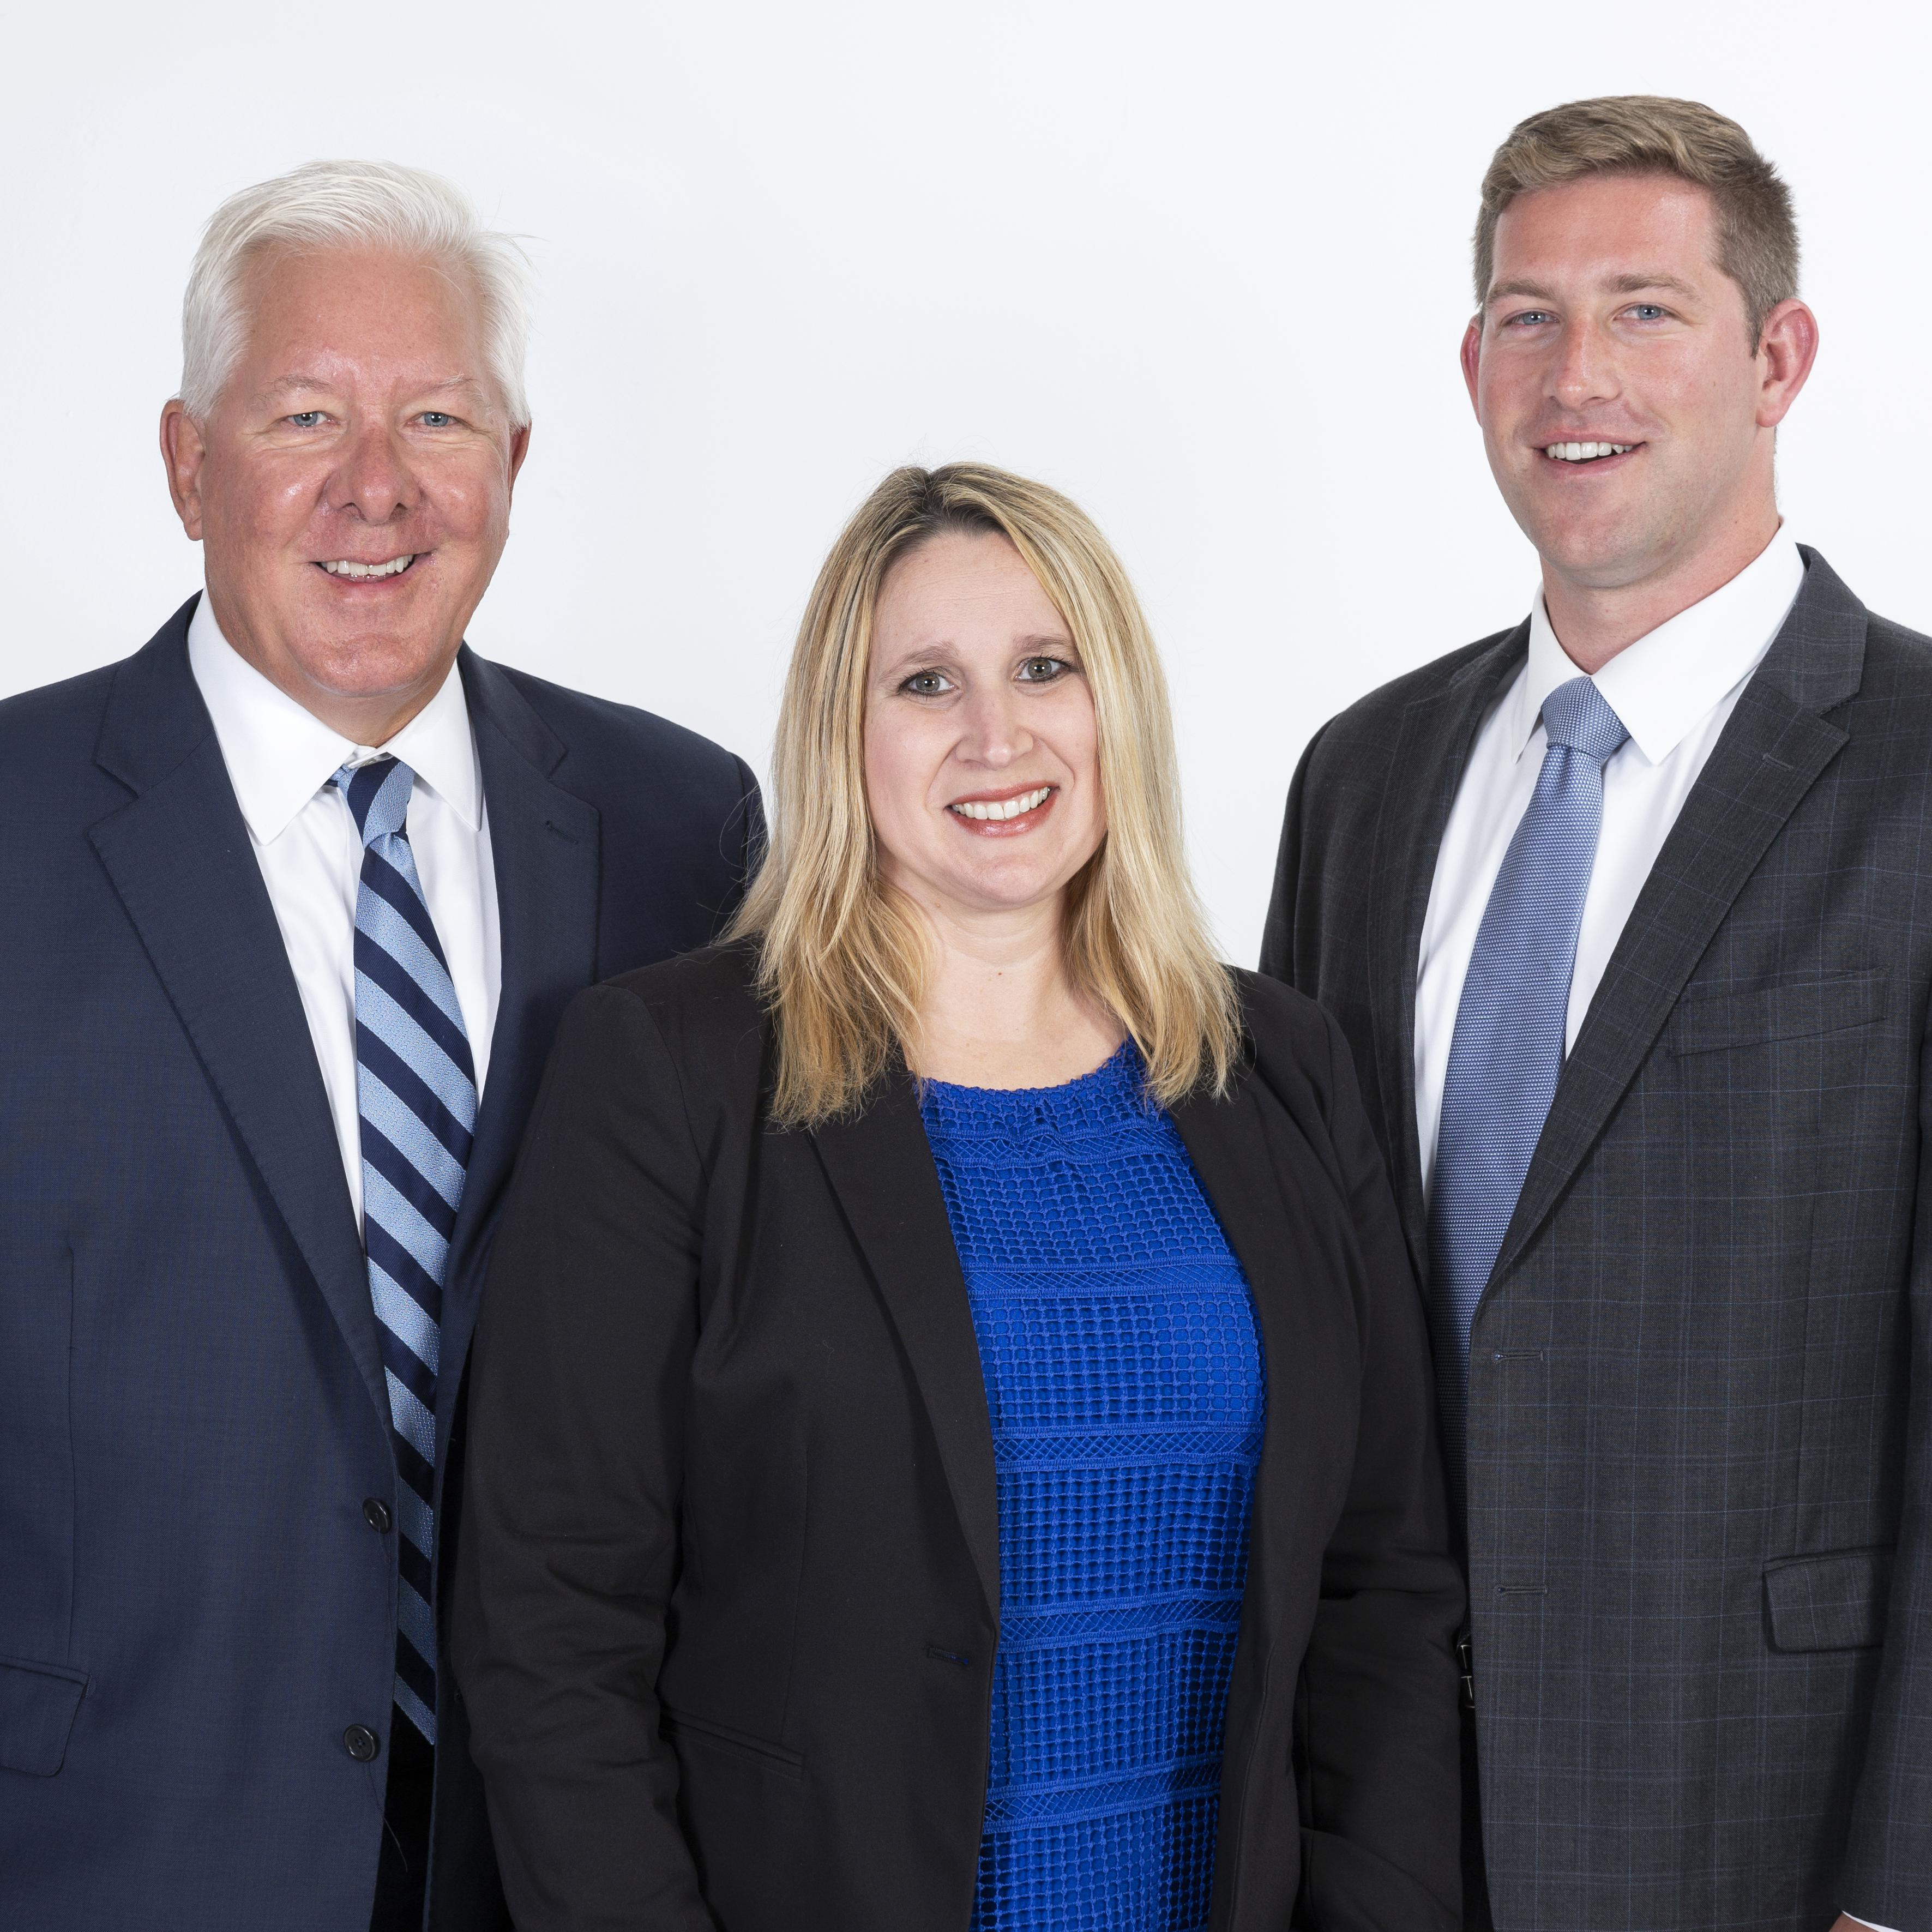 Harbor View Wealth Advisors Profile Photo